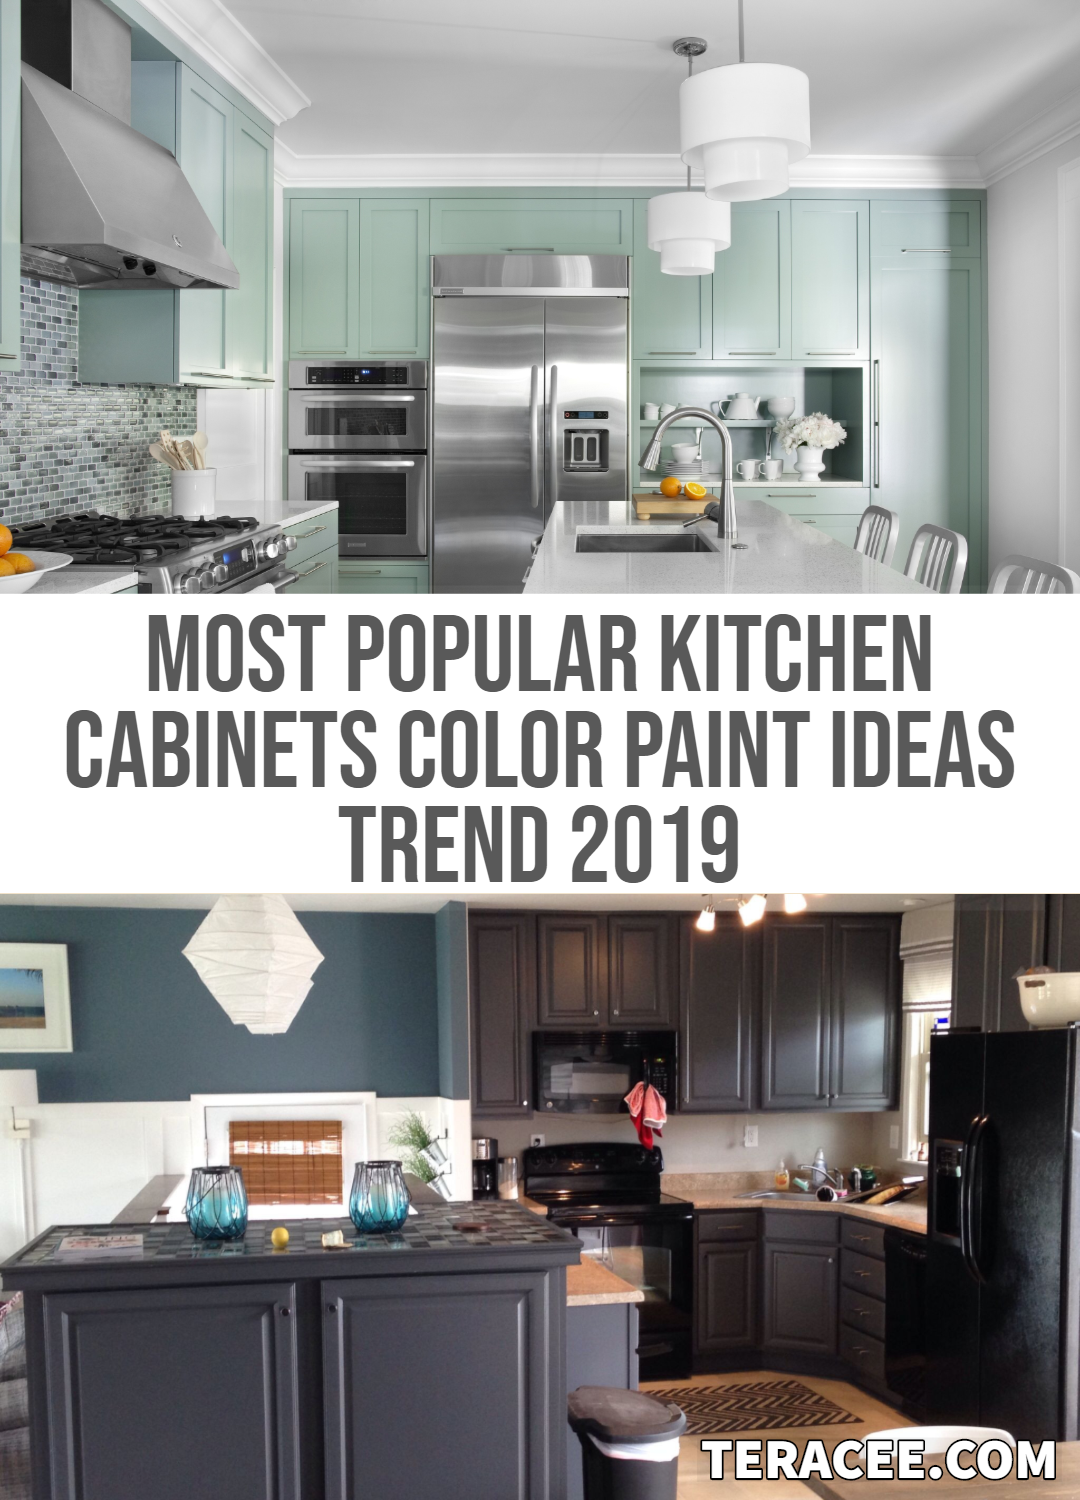 33 Most Popular Kitchen Cabinets Color Paint Ideas Trend 2019